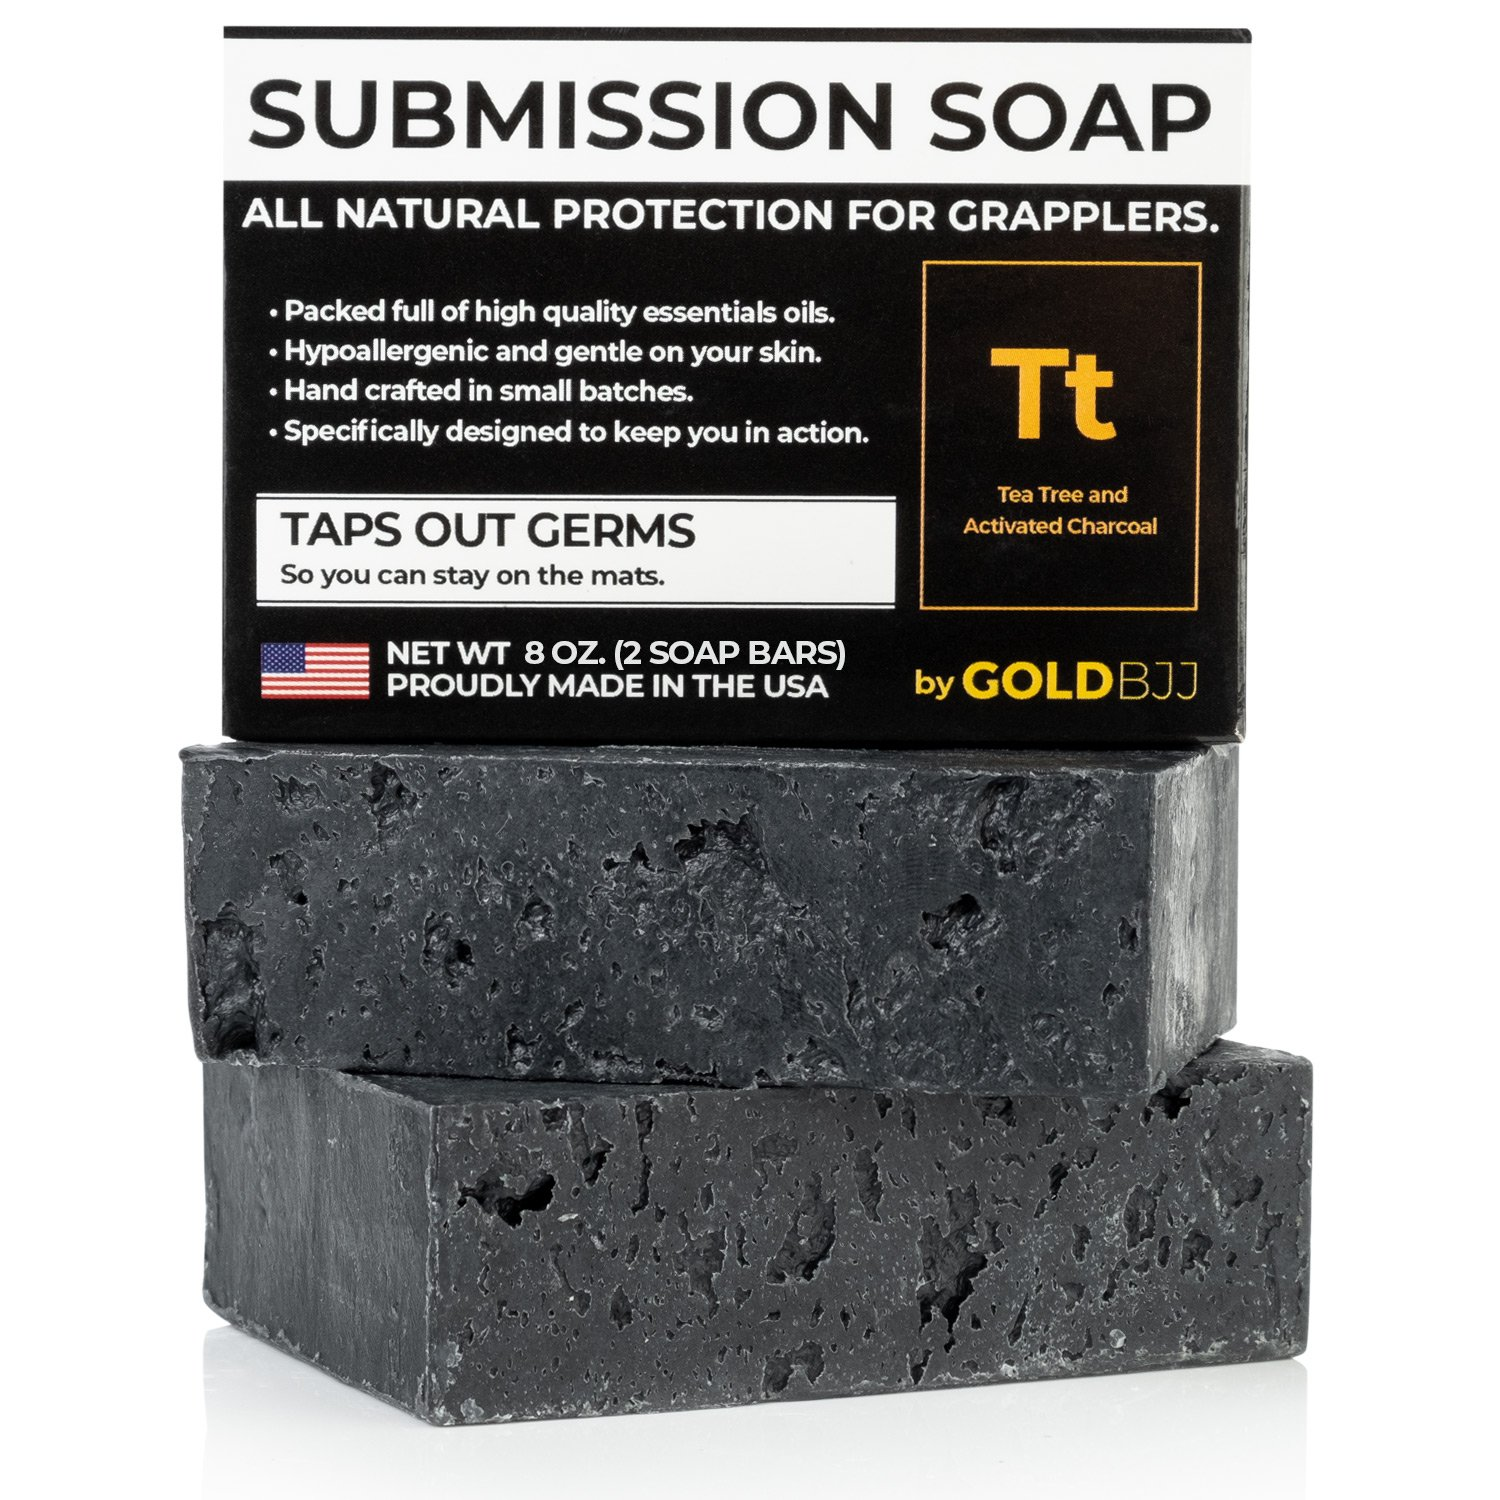 Premium Tea Tree Oil Soap - With Activated Charcoal! 100% All Natural USA Made Bars for BJJ, Jiu Jitsu, Wrestling (2-Pack of 4 Ounce Soap Bars)